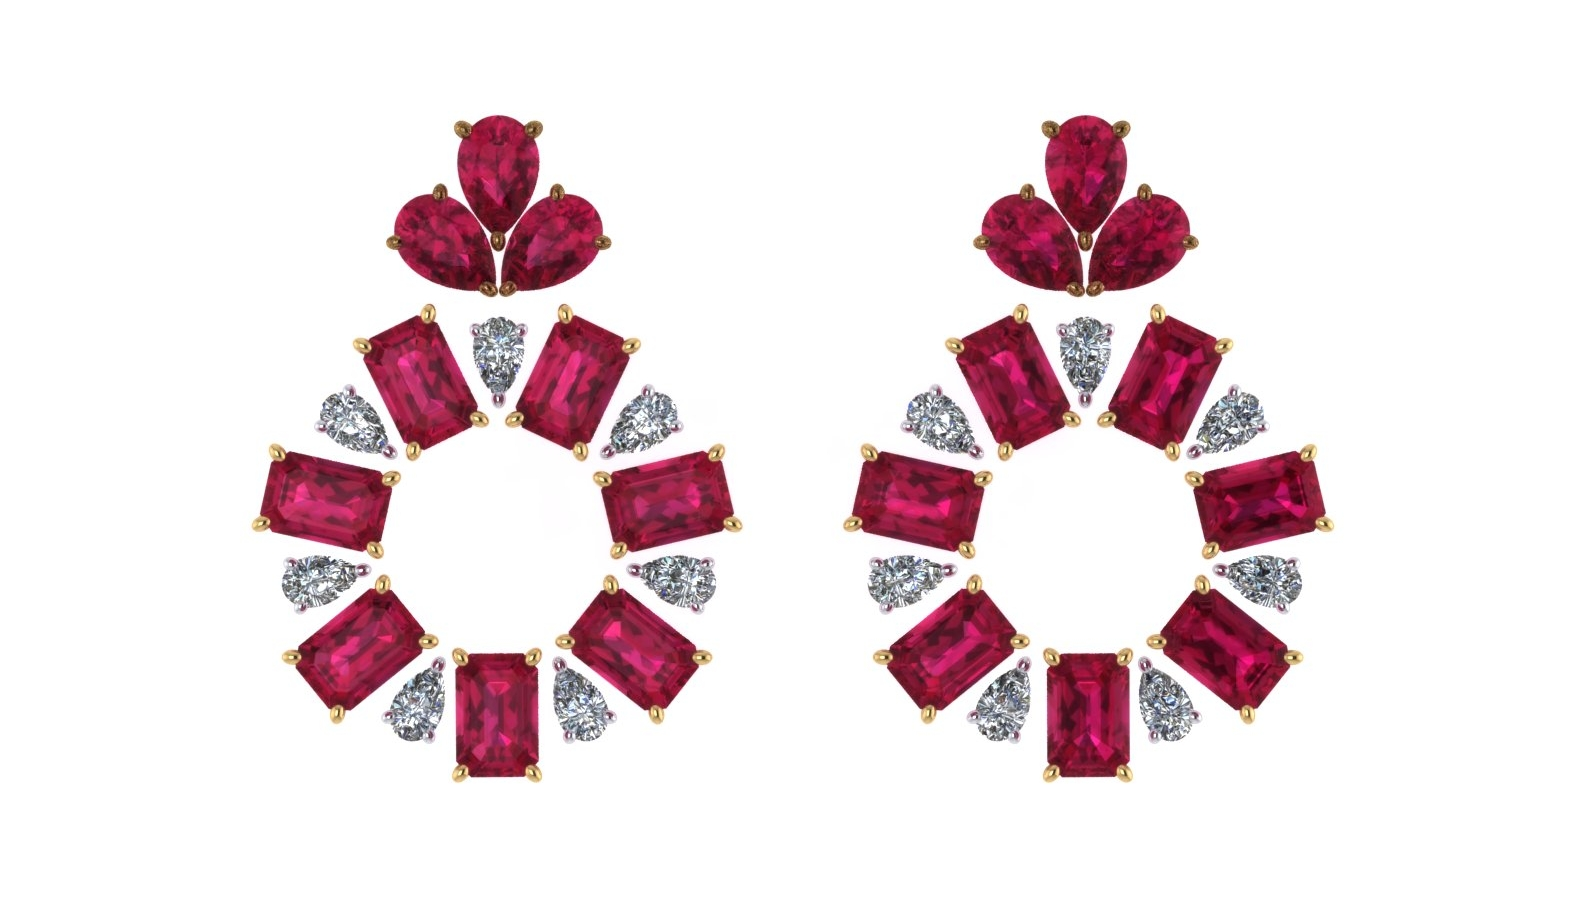 I used the customer's standard sized rubies and diamonds to create stone layouts only not finished jewelry images